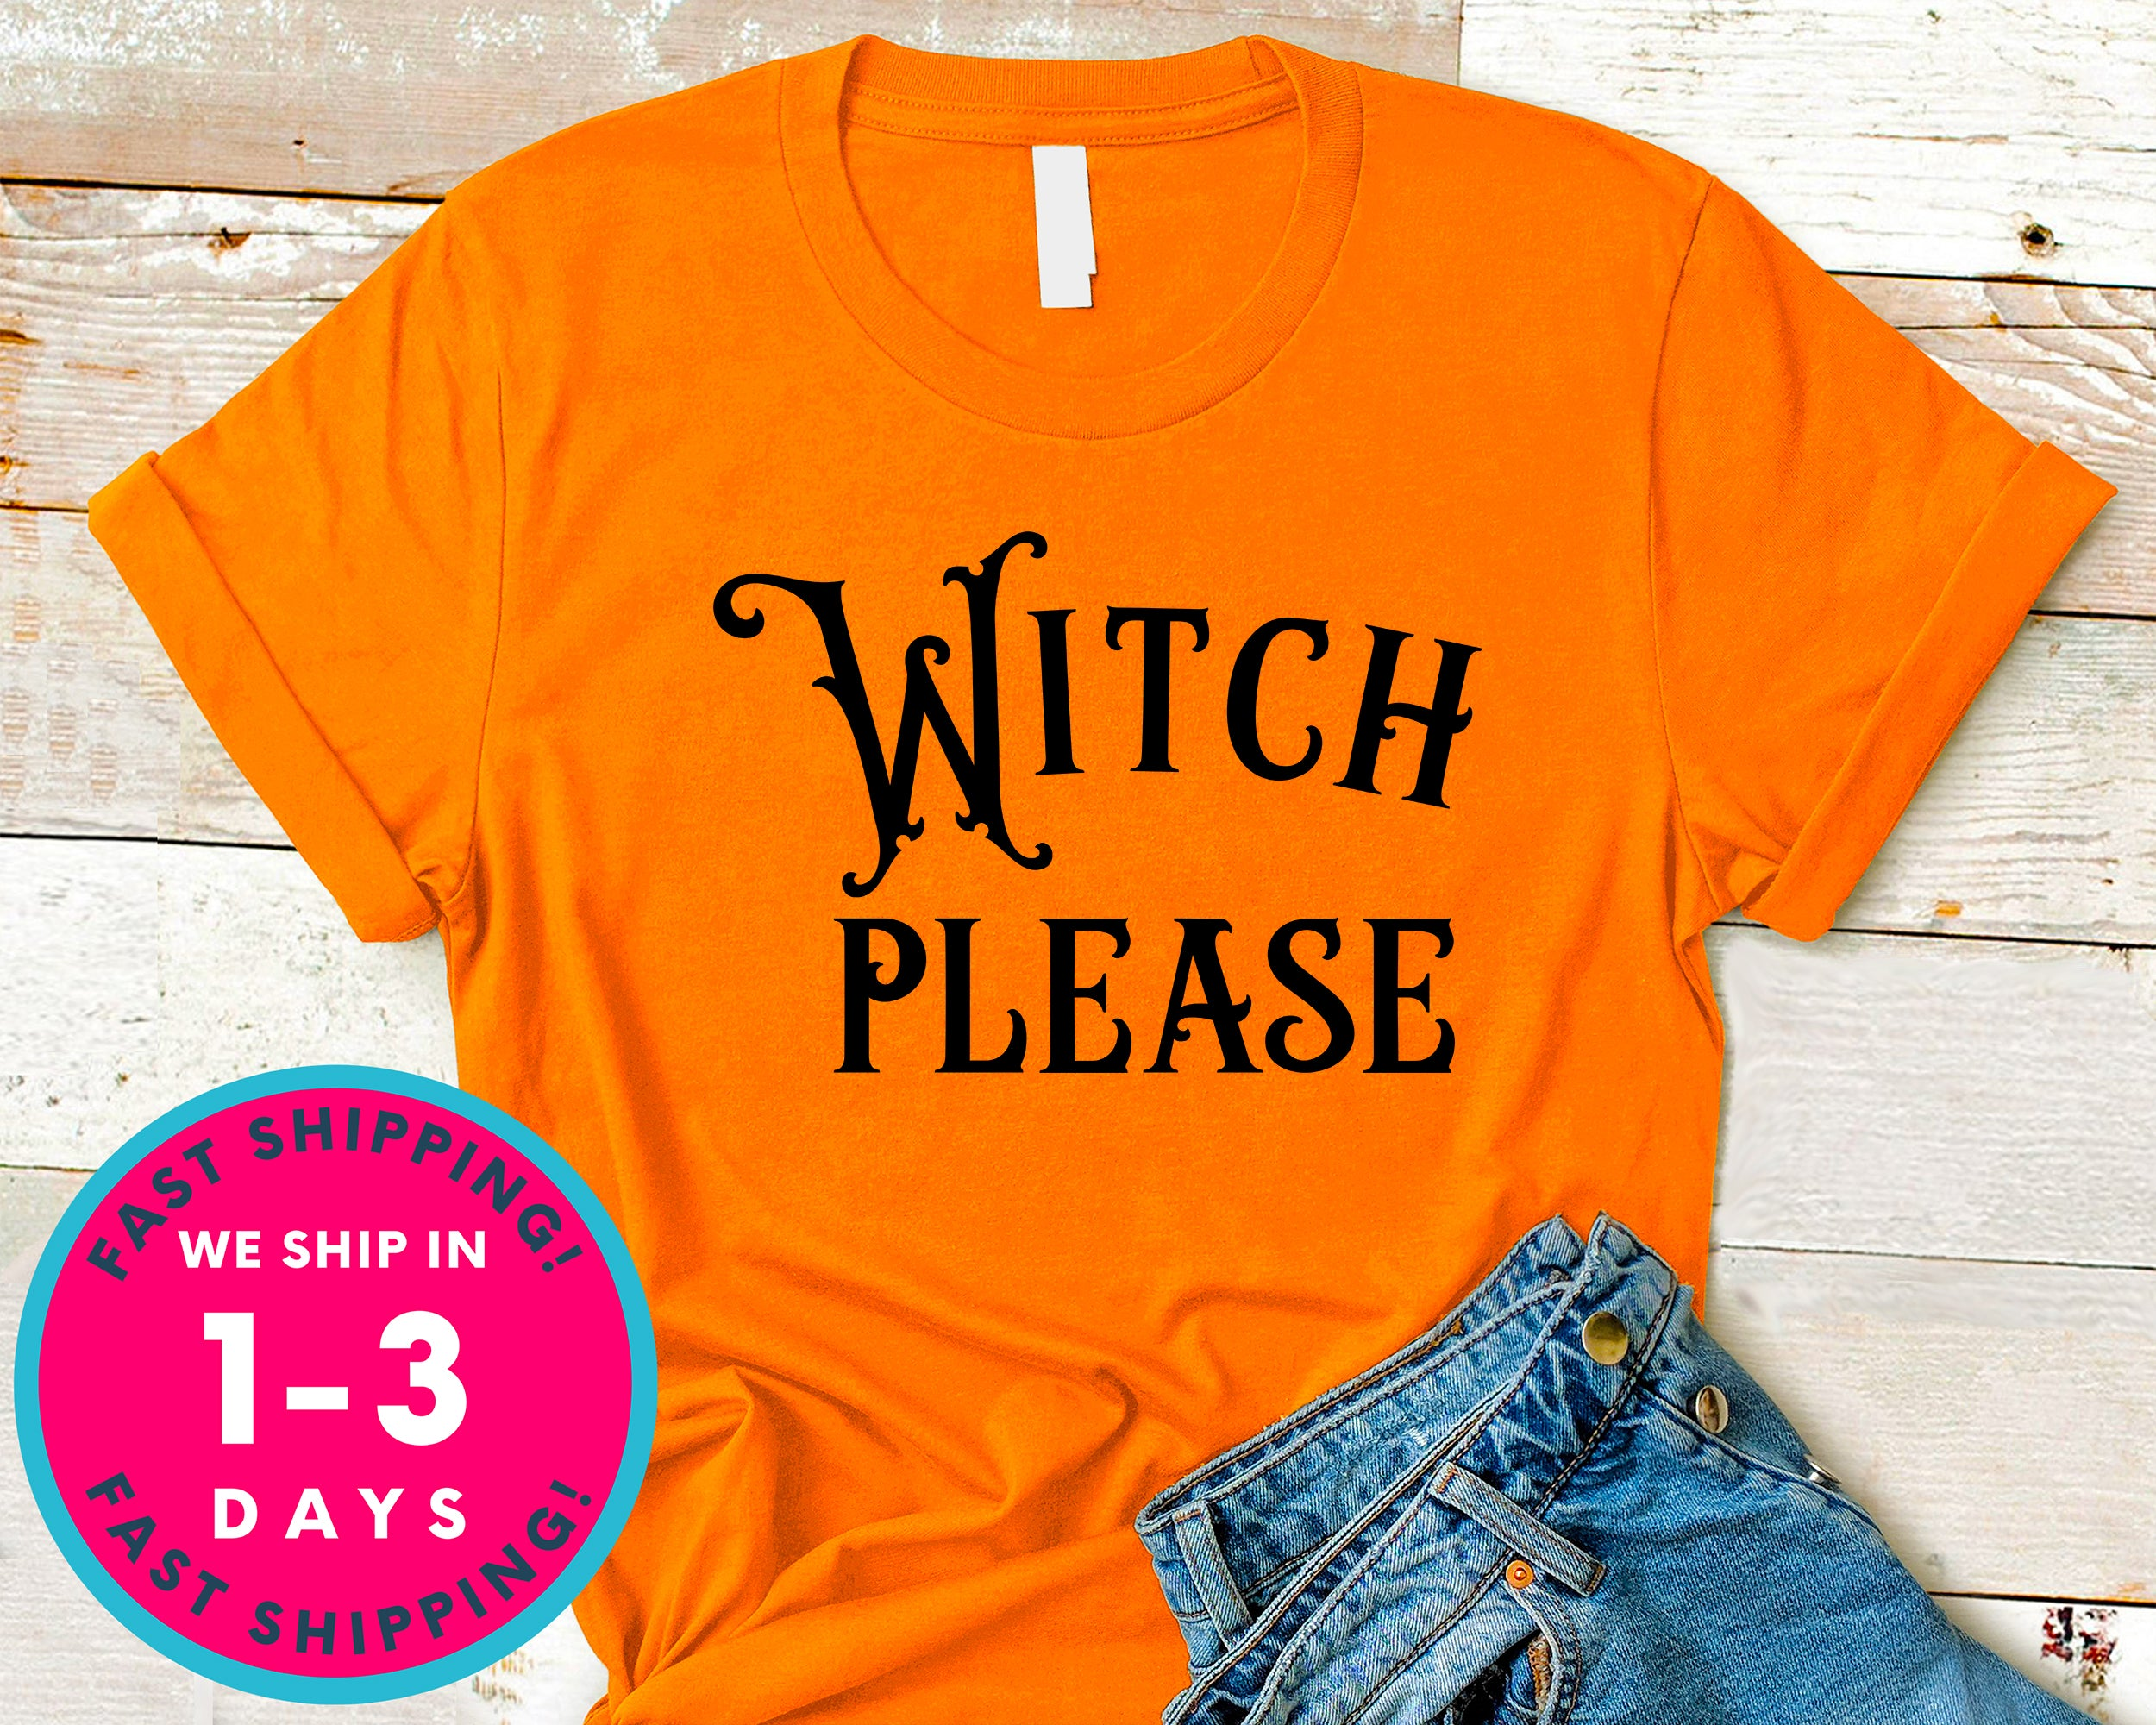 Witch Please T-Shirt - Halloween Horror Scary Shirt